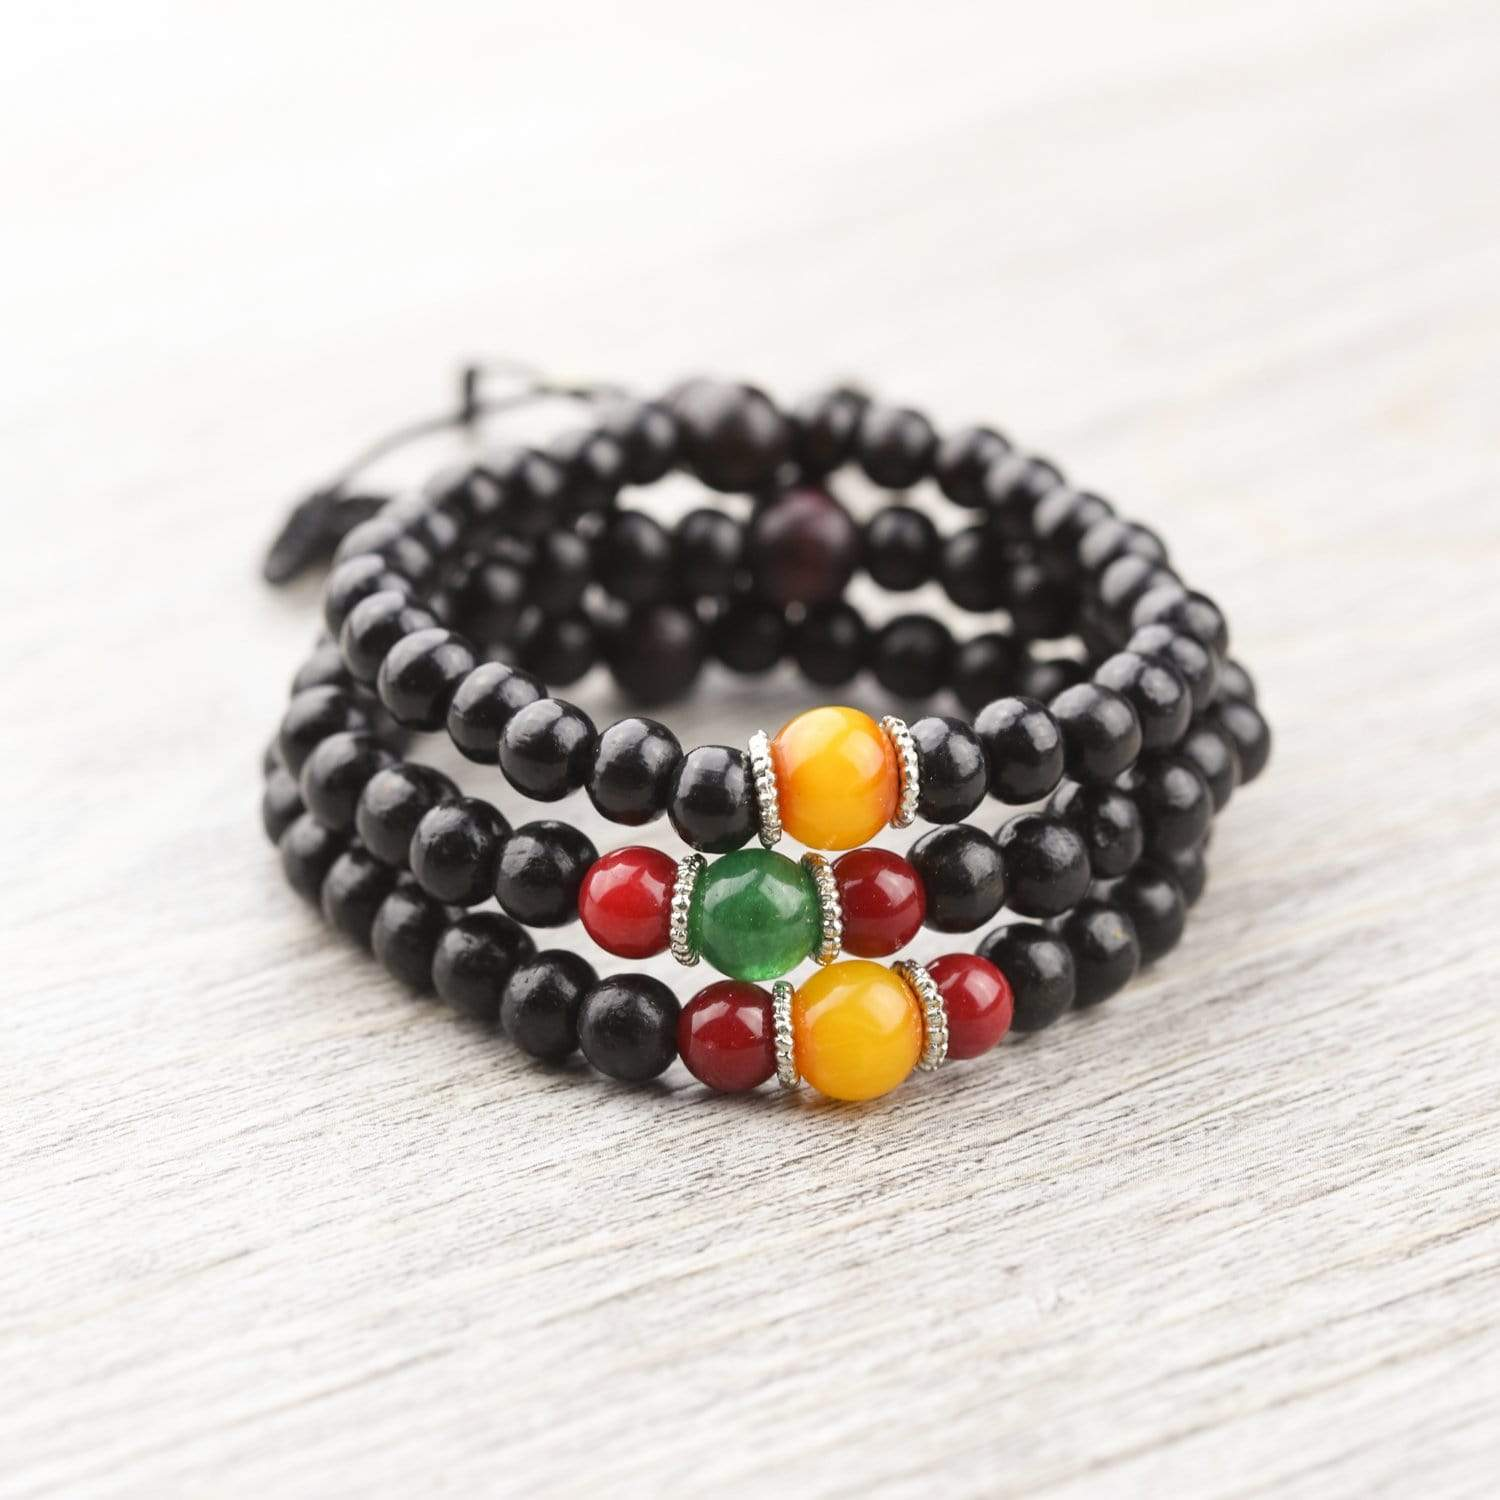 Wrist Malas Our Rosewood Wrist Mala Stack! - NEW wm001-stack